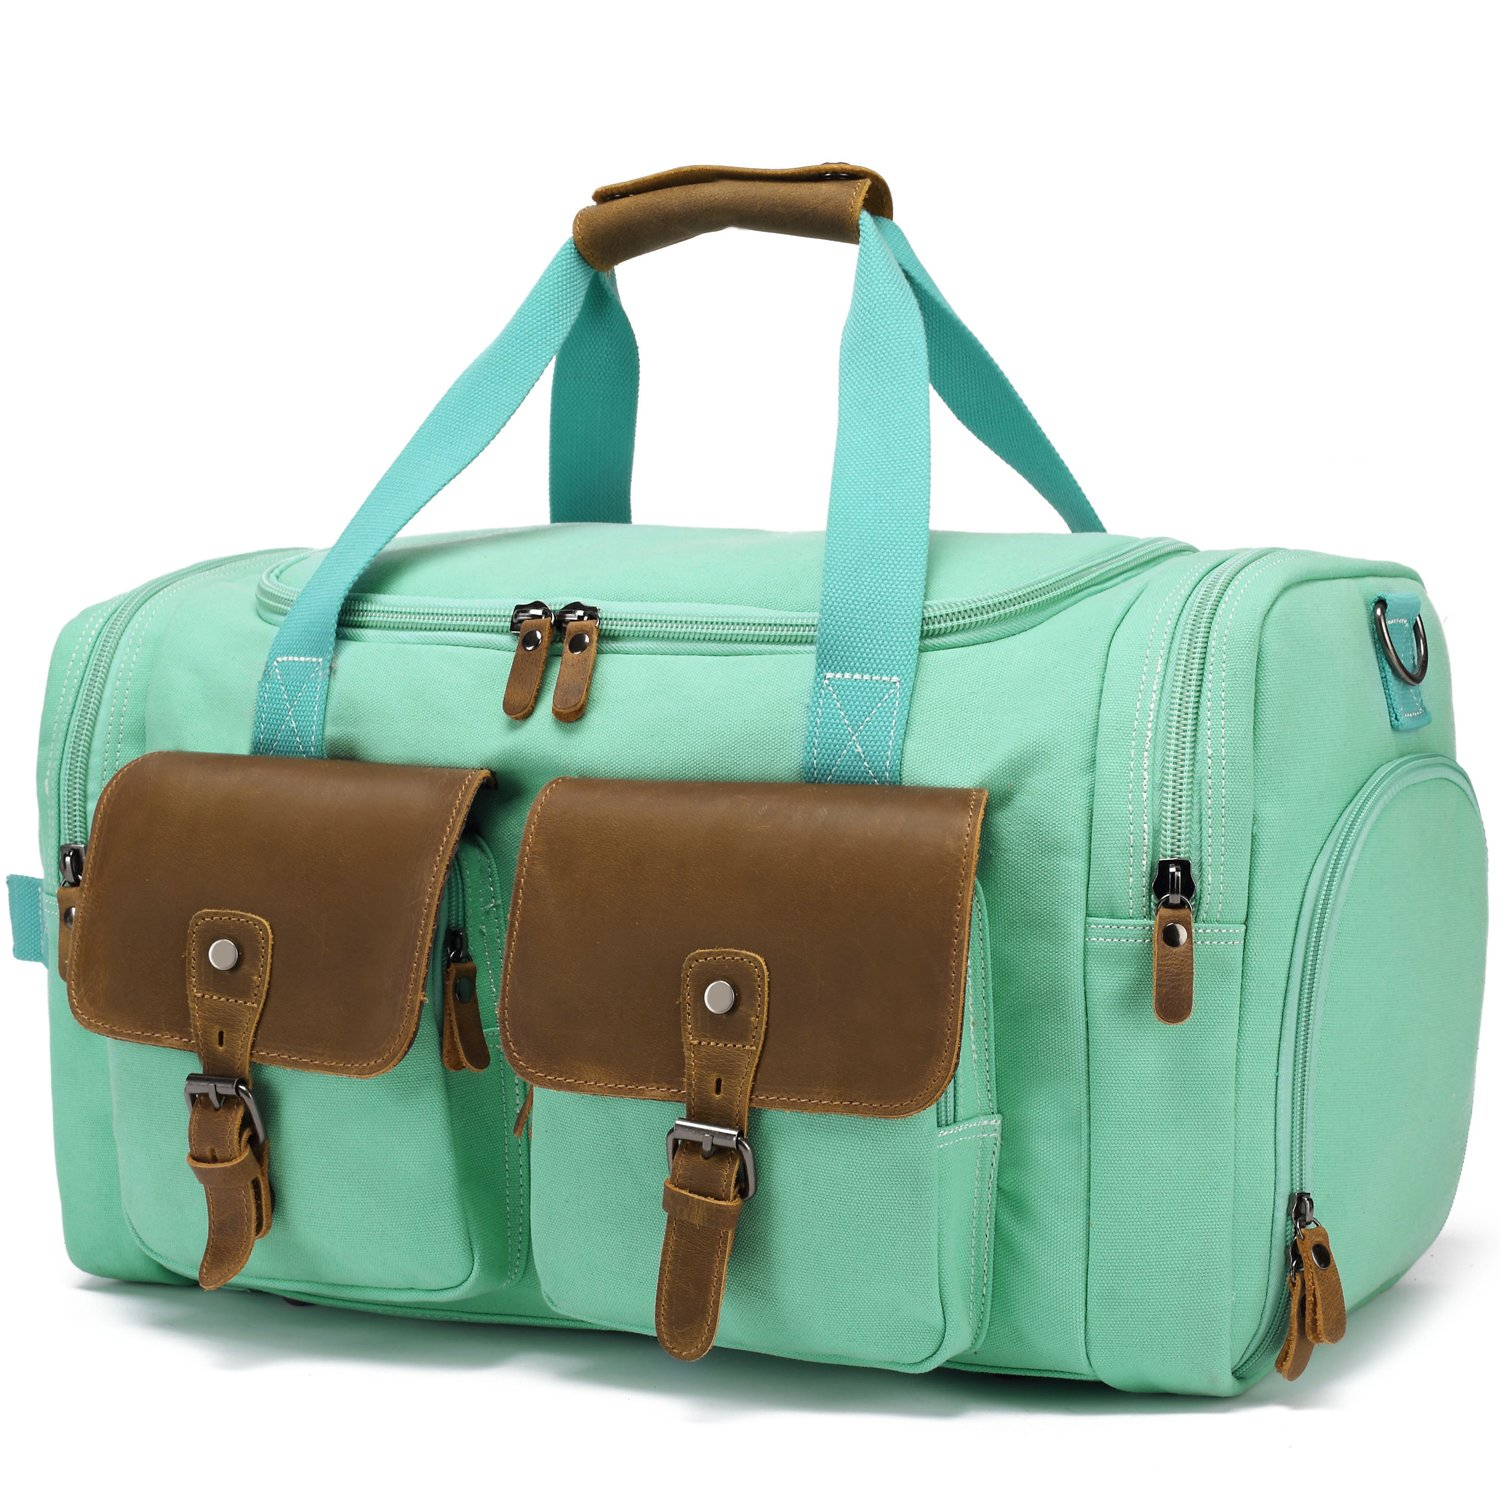 BLUBOON Weekender Duffle Bag Canvas Overnight Travel Duffel with Shoe Compartment for Women Leather Carry on Luggage Travel Tote Bag (Mint Green) by BLUBOON (Image #1)